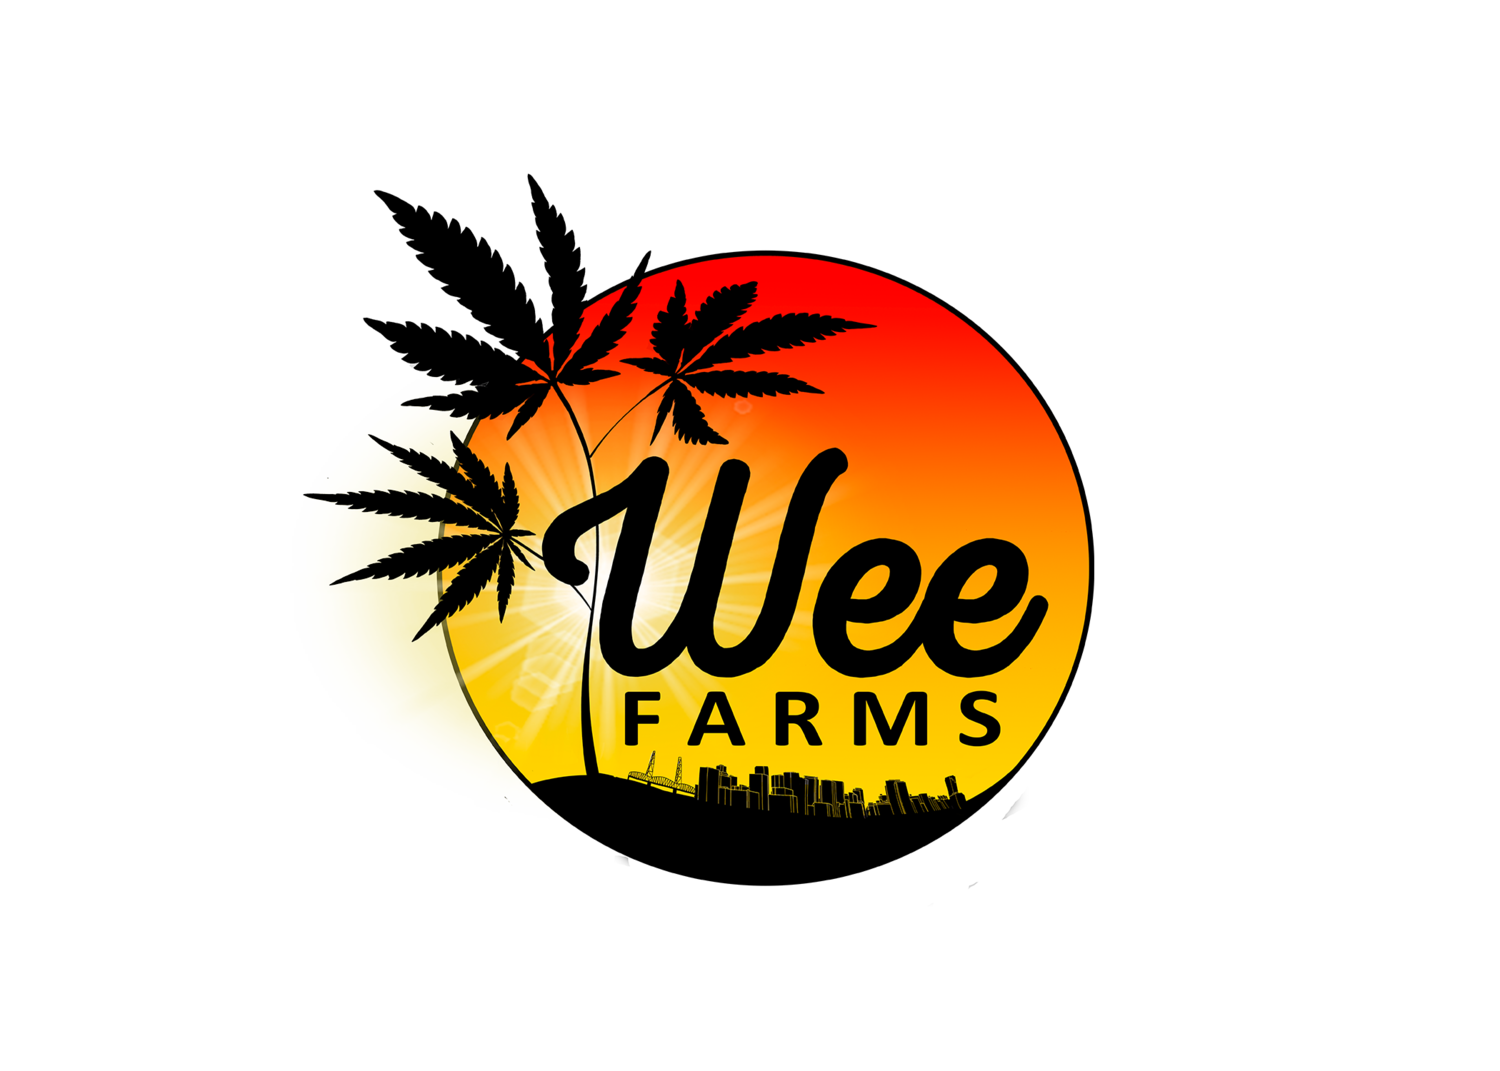 WEE FARMS / CANBY, OREGON